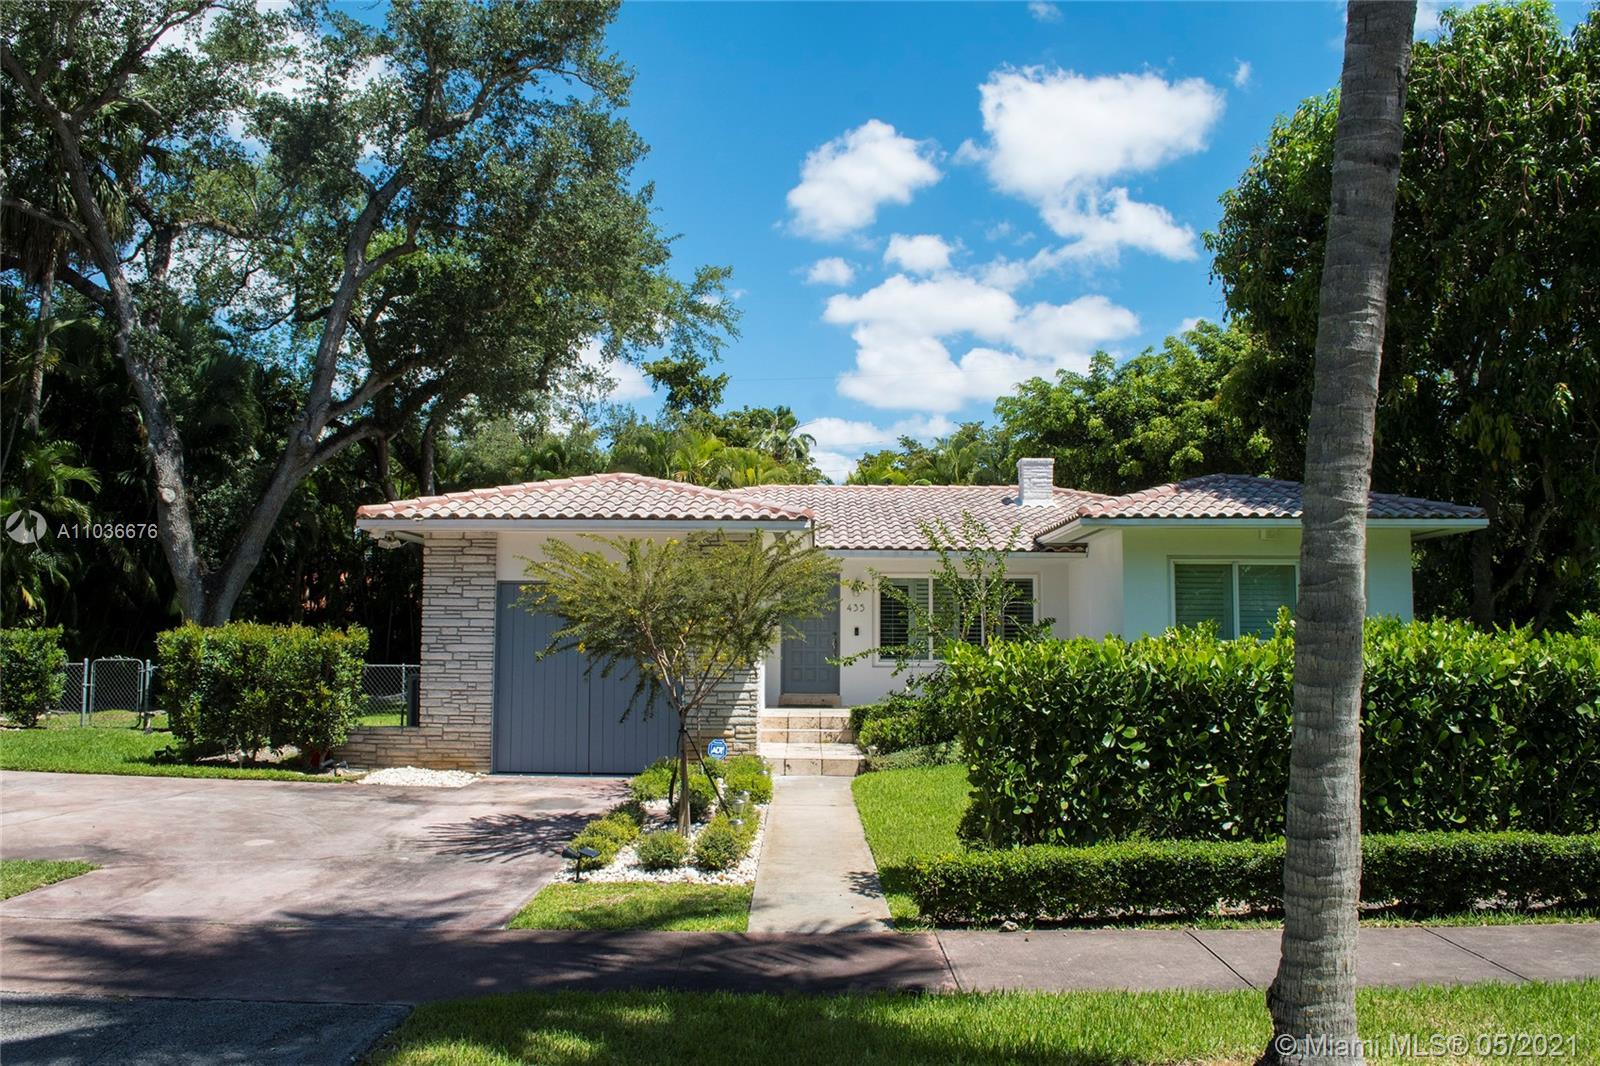 BRAND NEW 2020 ROOF! This fabulous South Gables home completely renovated with high-end custom detai